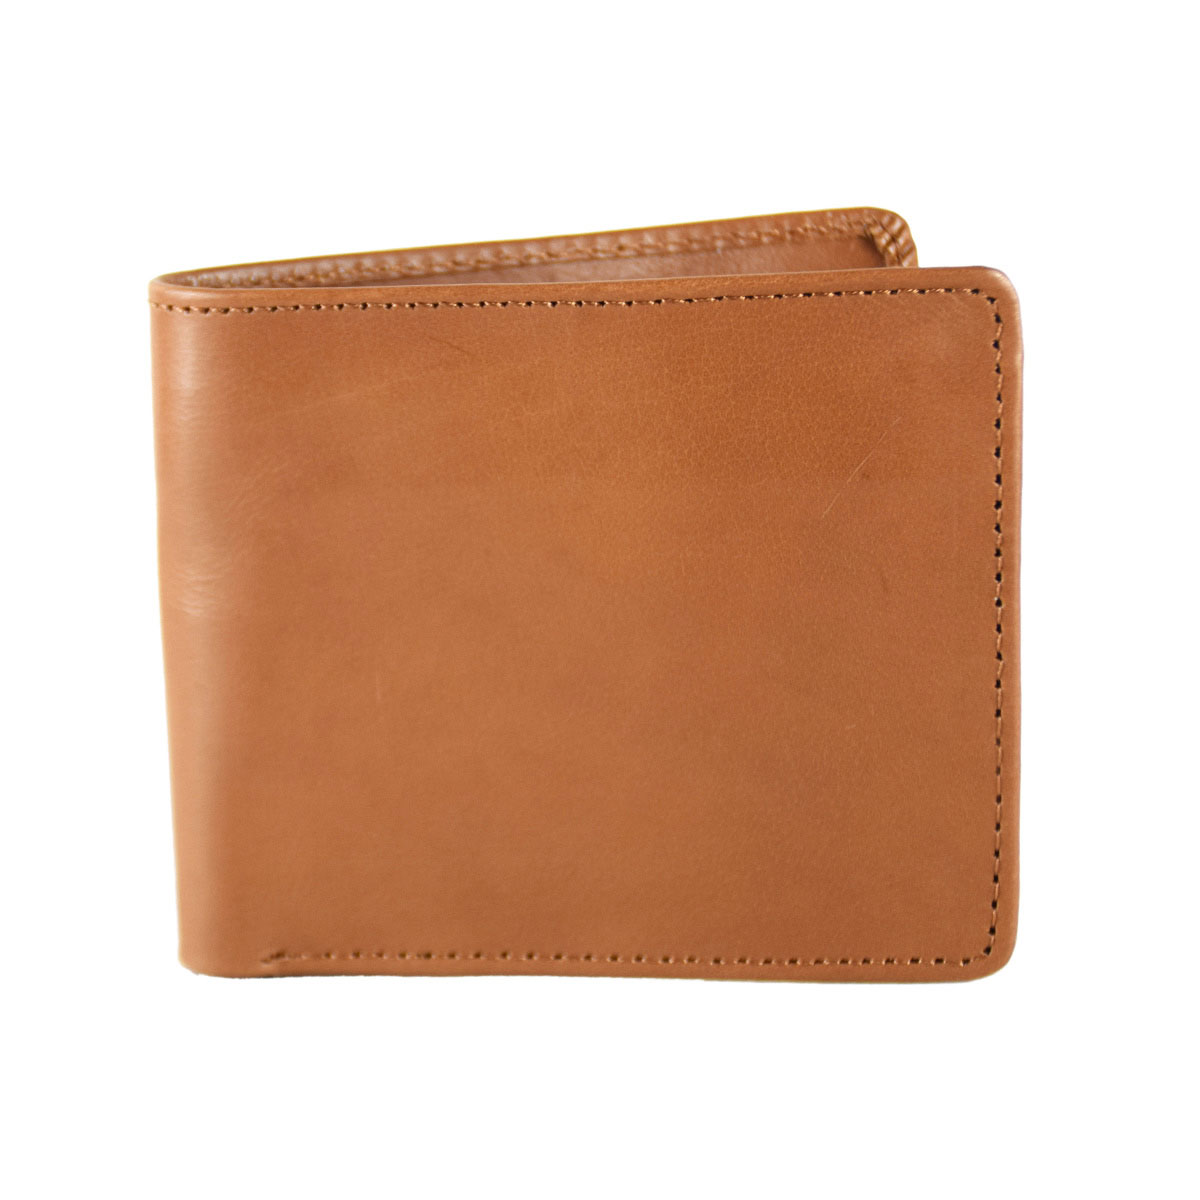 BROWN POCKET WALLET WITH CARD HOLDER